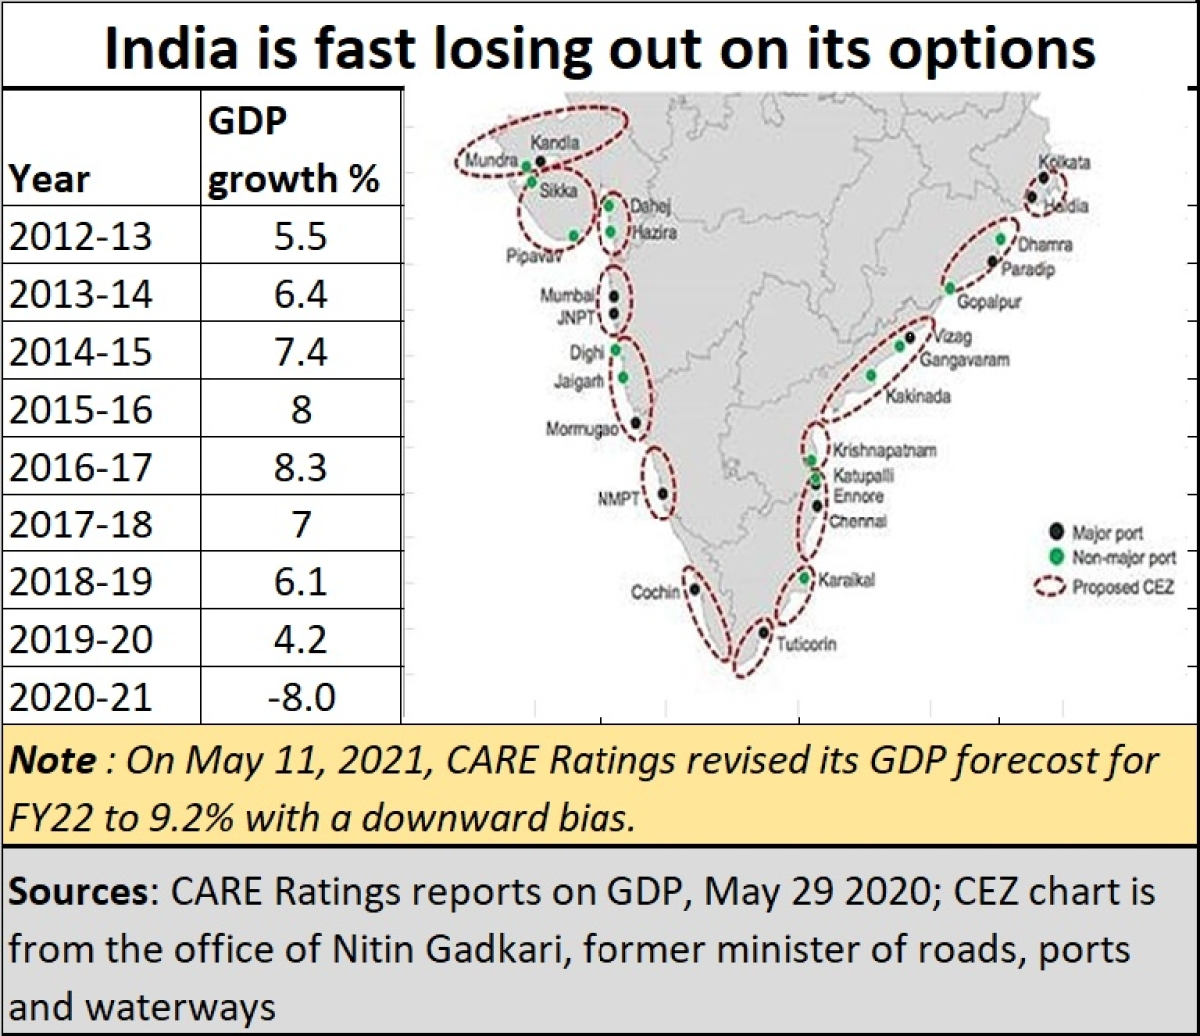 Policy watch: Agenda #2 – CEZs can help India revive from its continuous decline